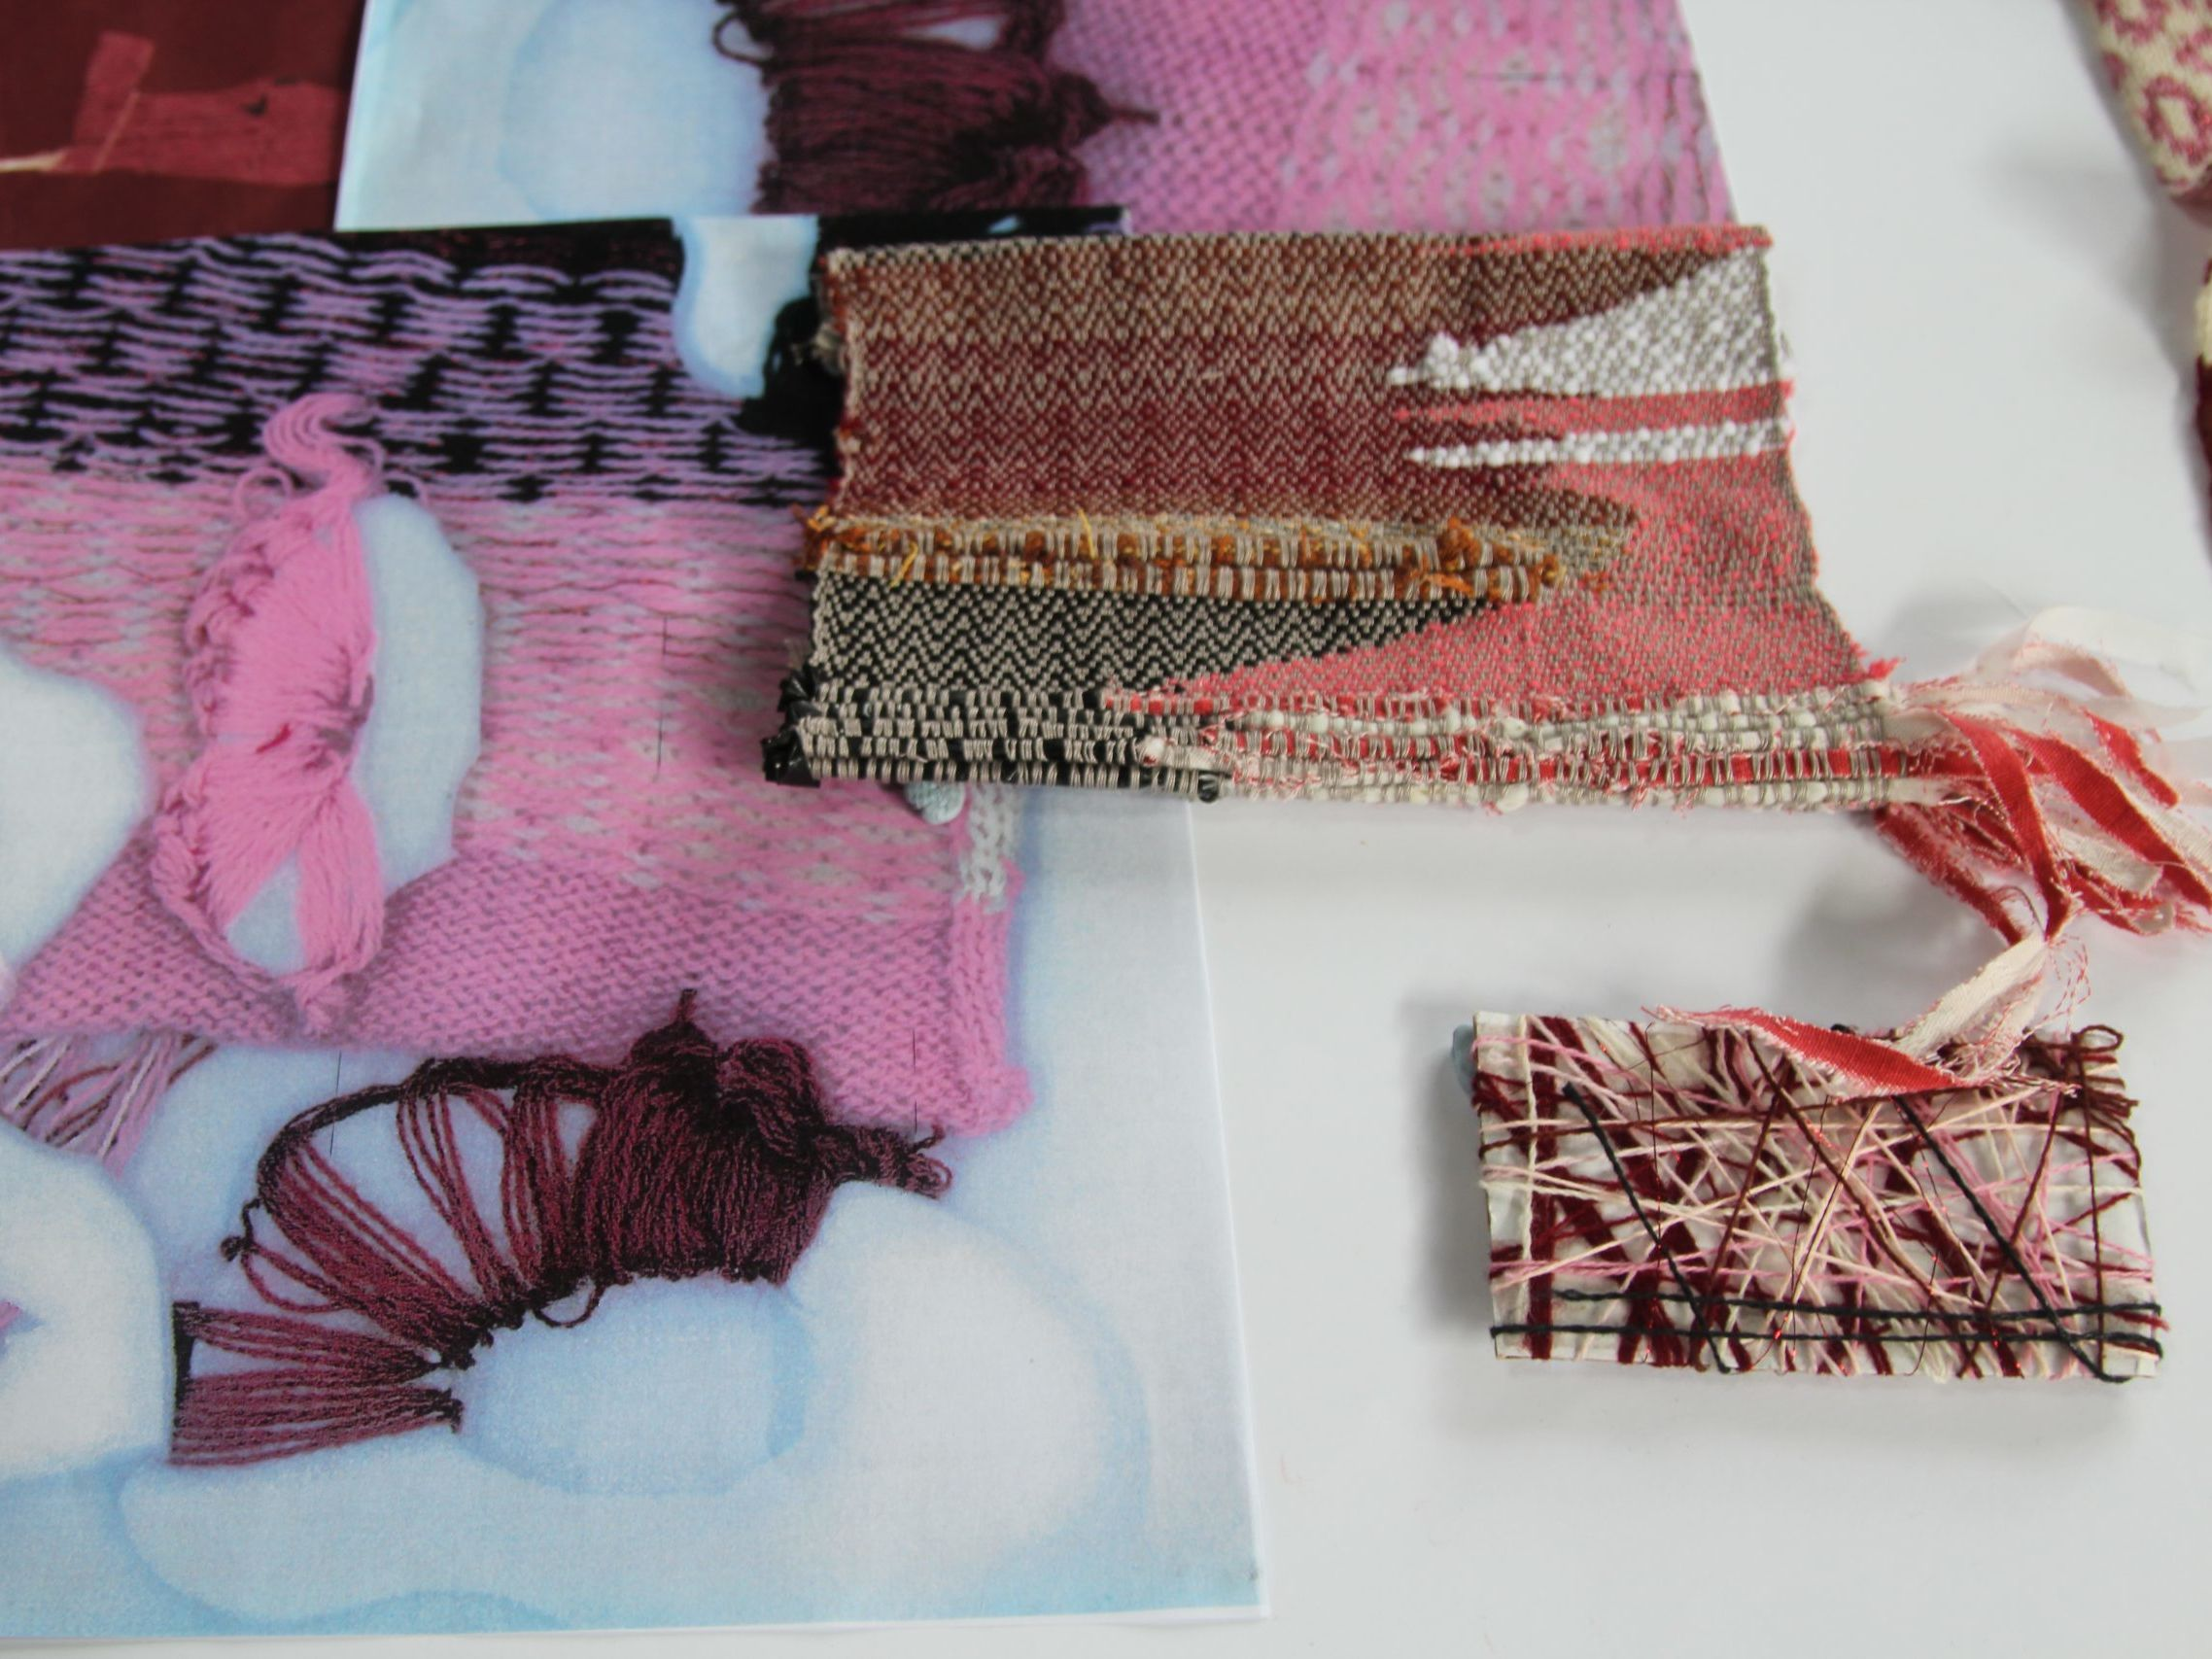 Birds eye view of textile samples in pink and maroon tones